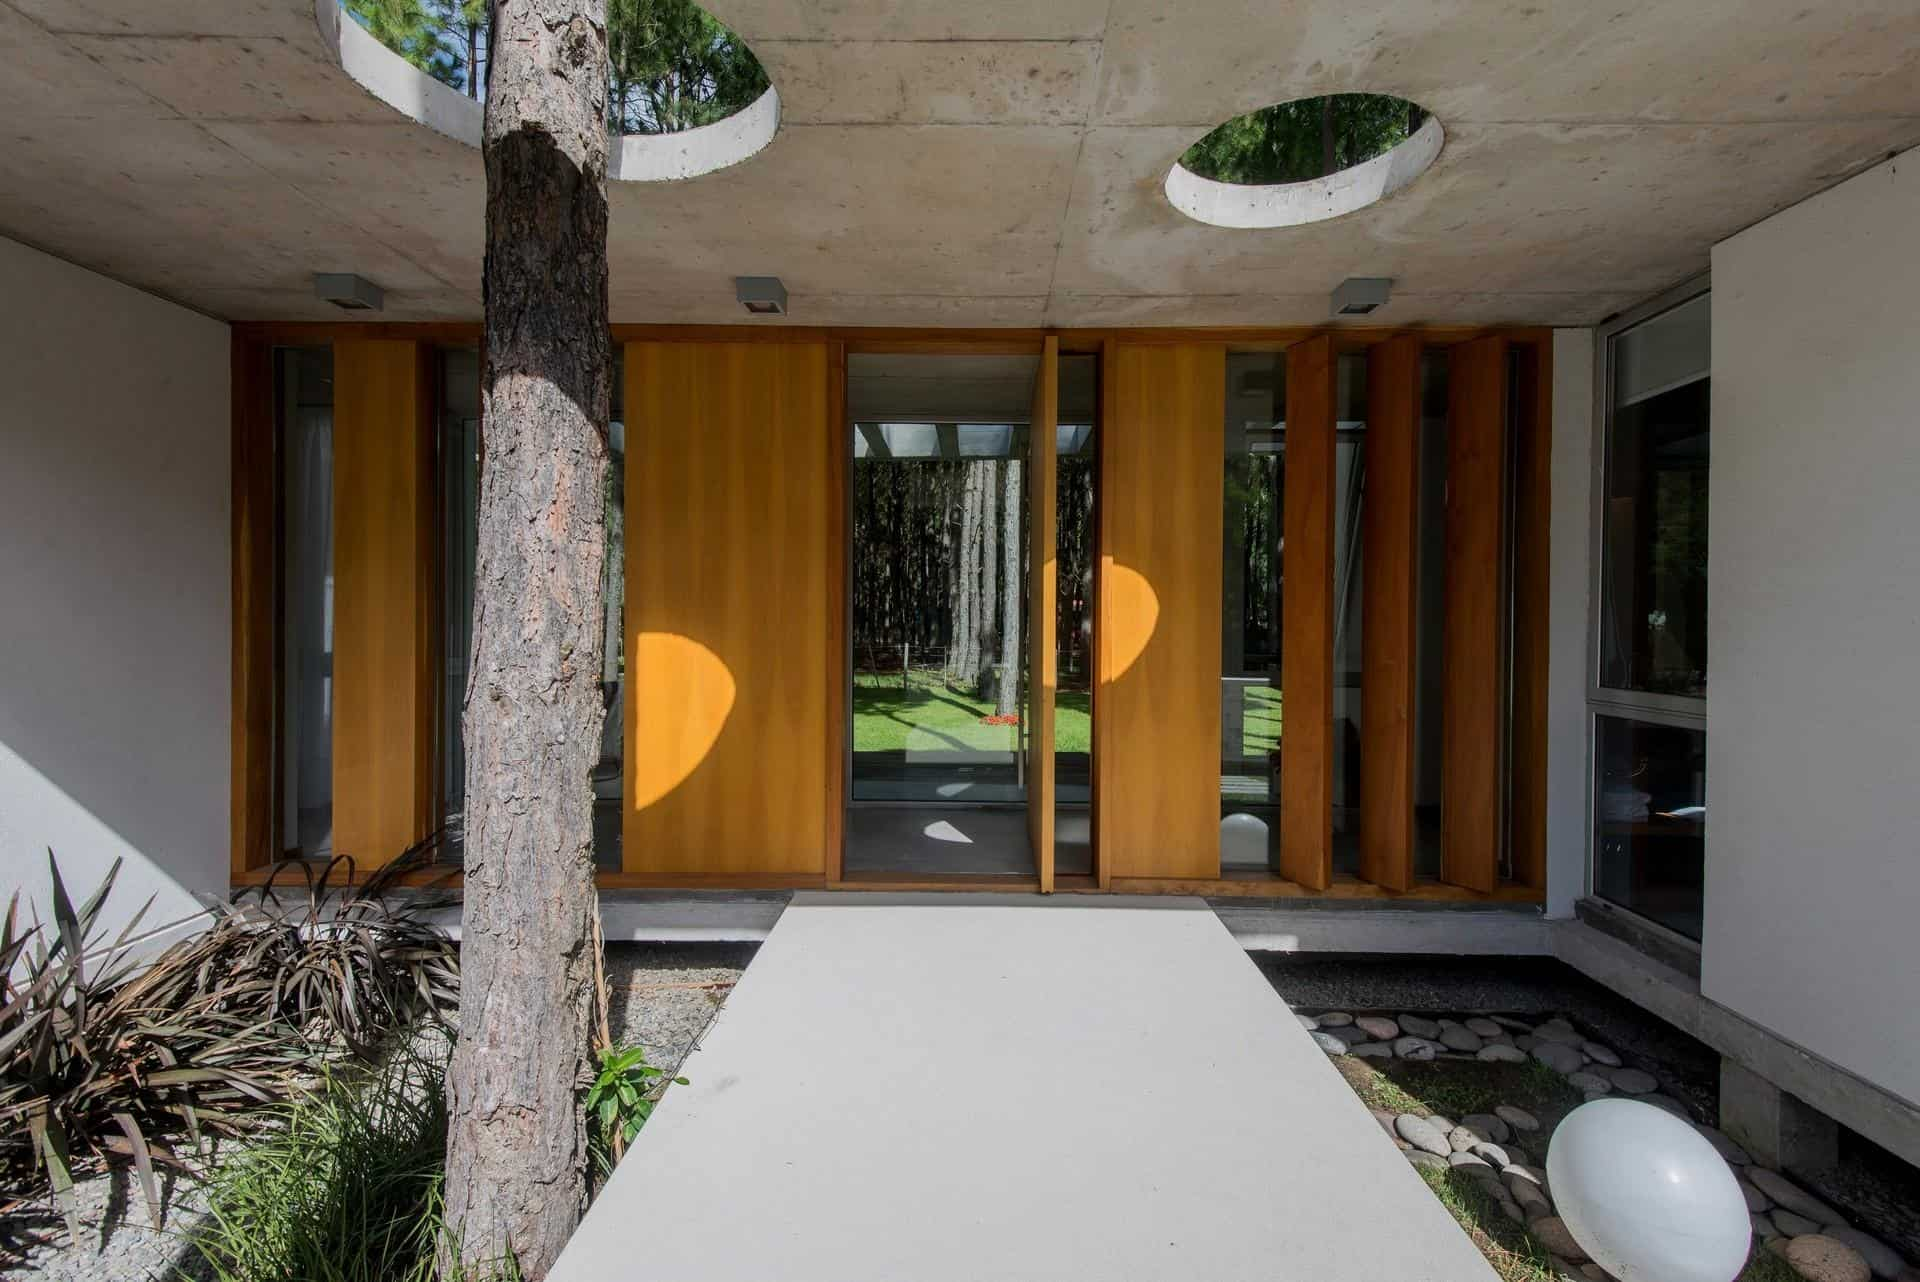 The Batin House Is Located In Pinamar, Buenos Aires On A Lot Surrounded By  A Pine Forest, With Many Of The Pines Spilling Forth Onto The Lot Itself.